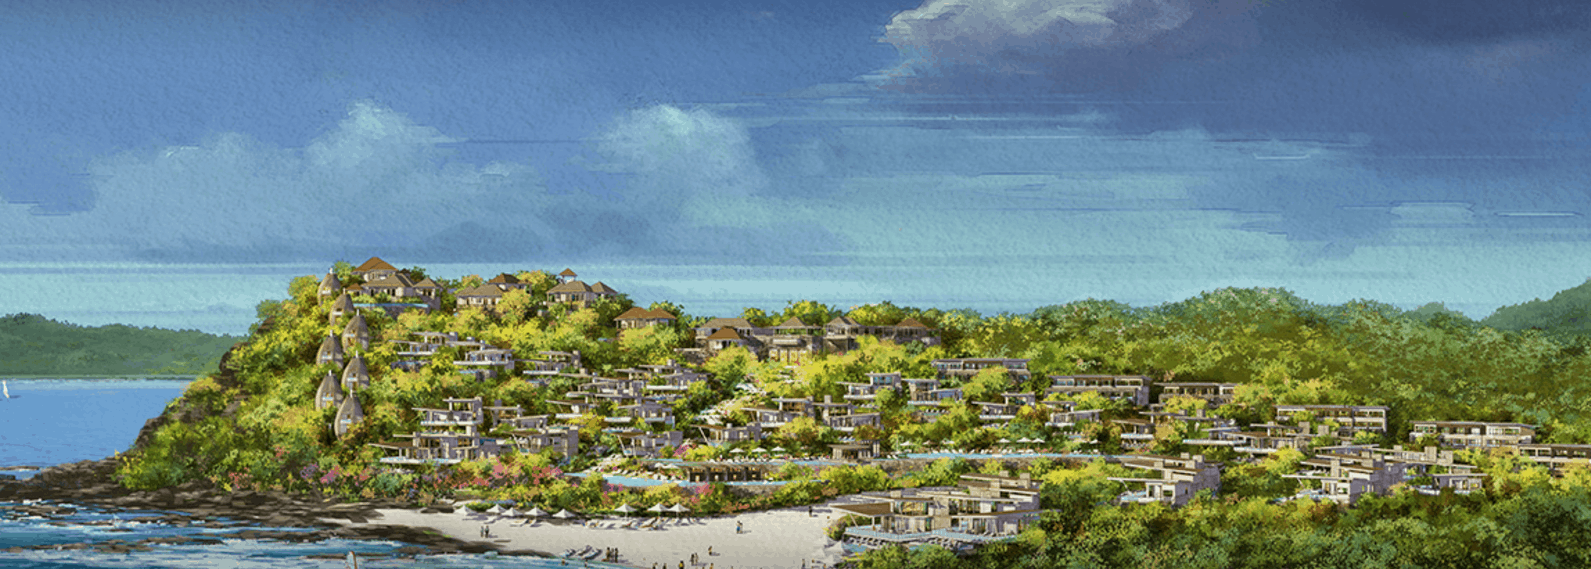 rosewood Rosewood Papagayo, Costa Rica To Open in 2019